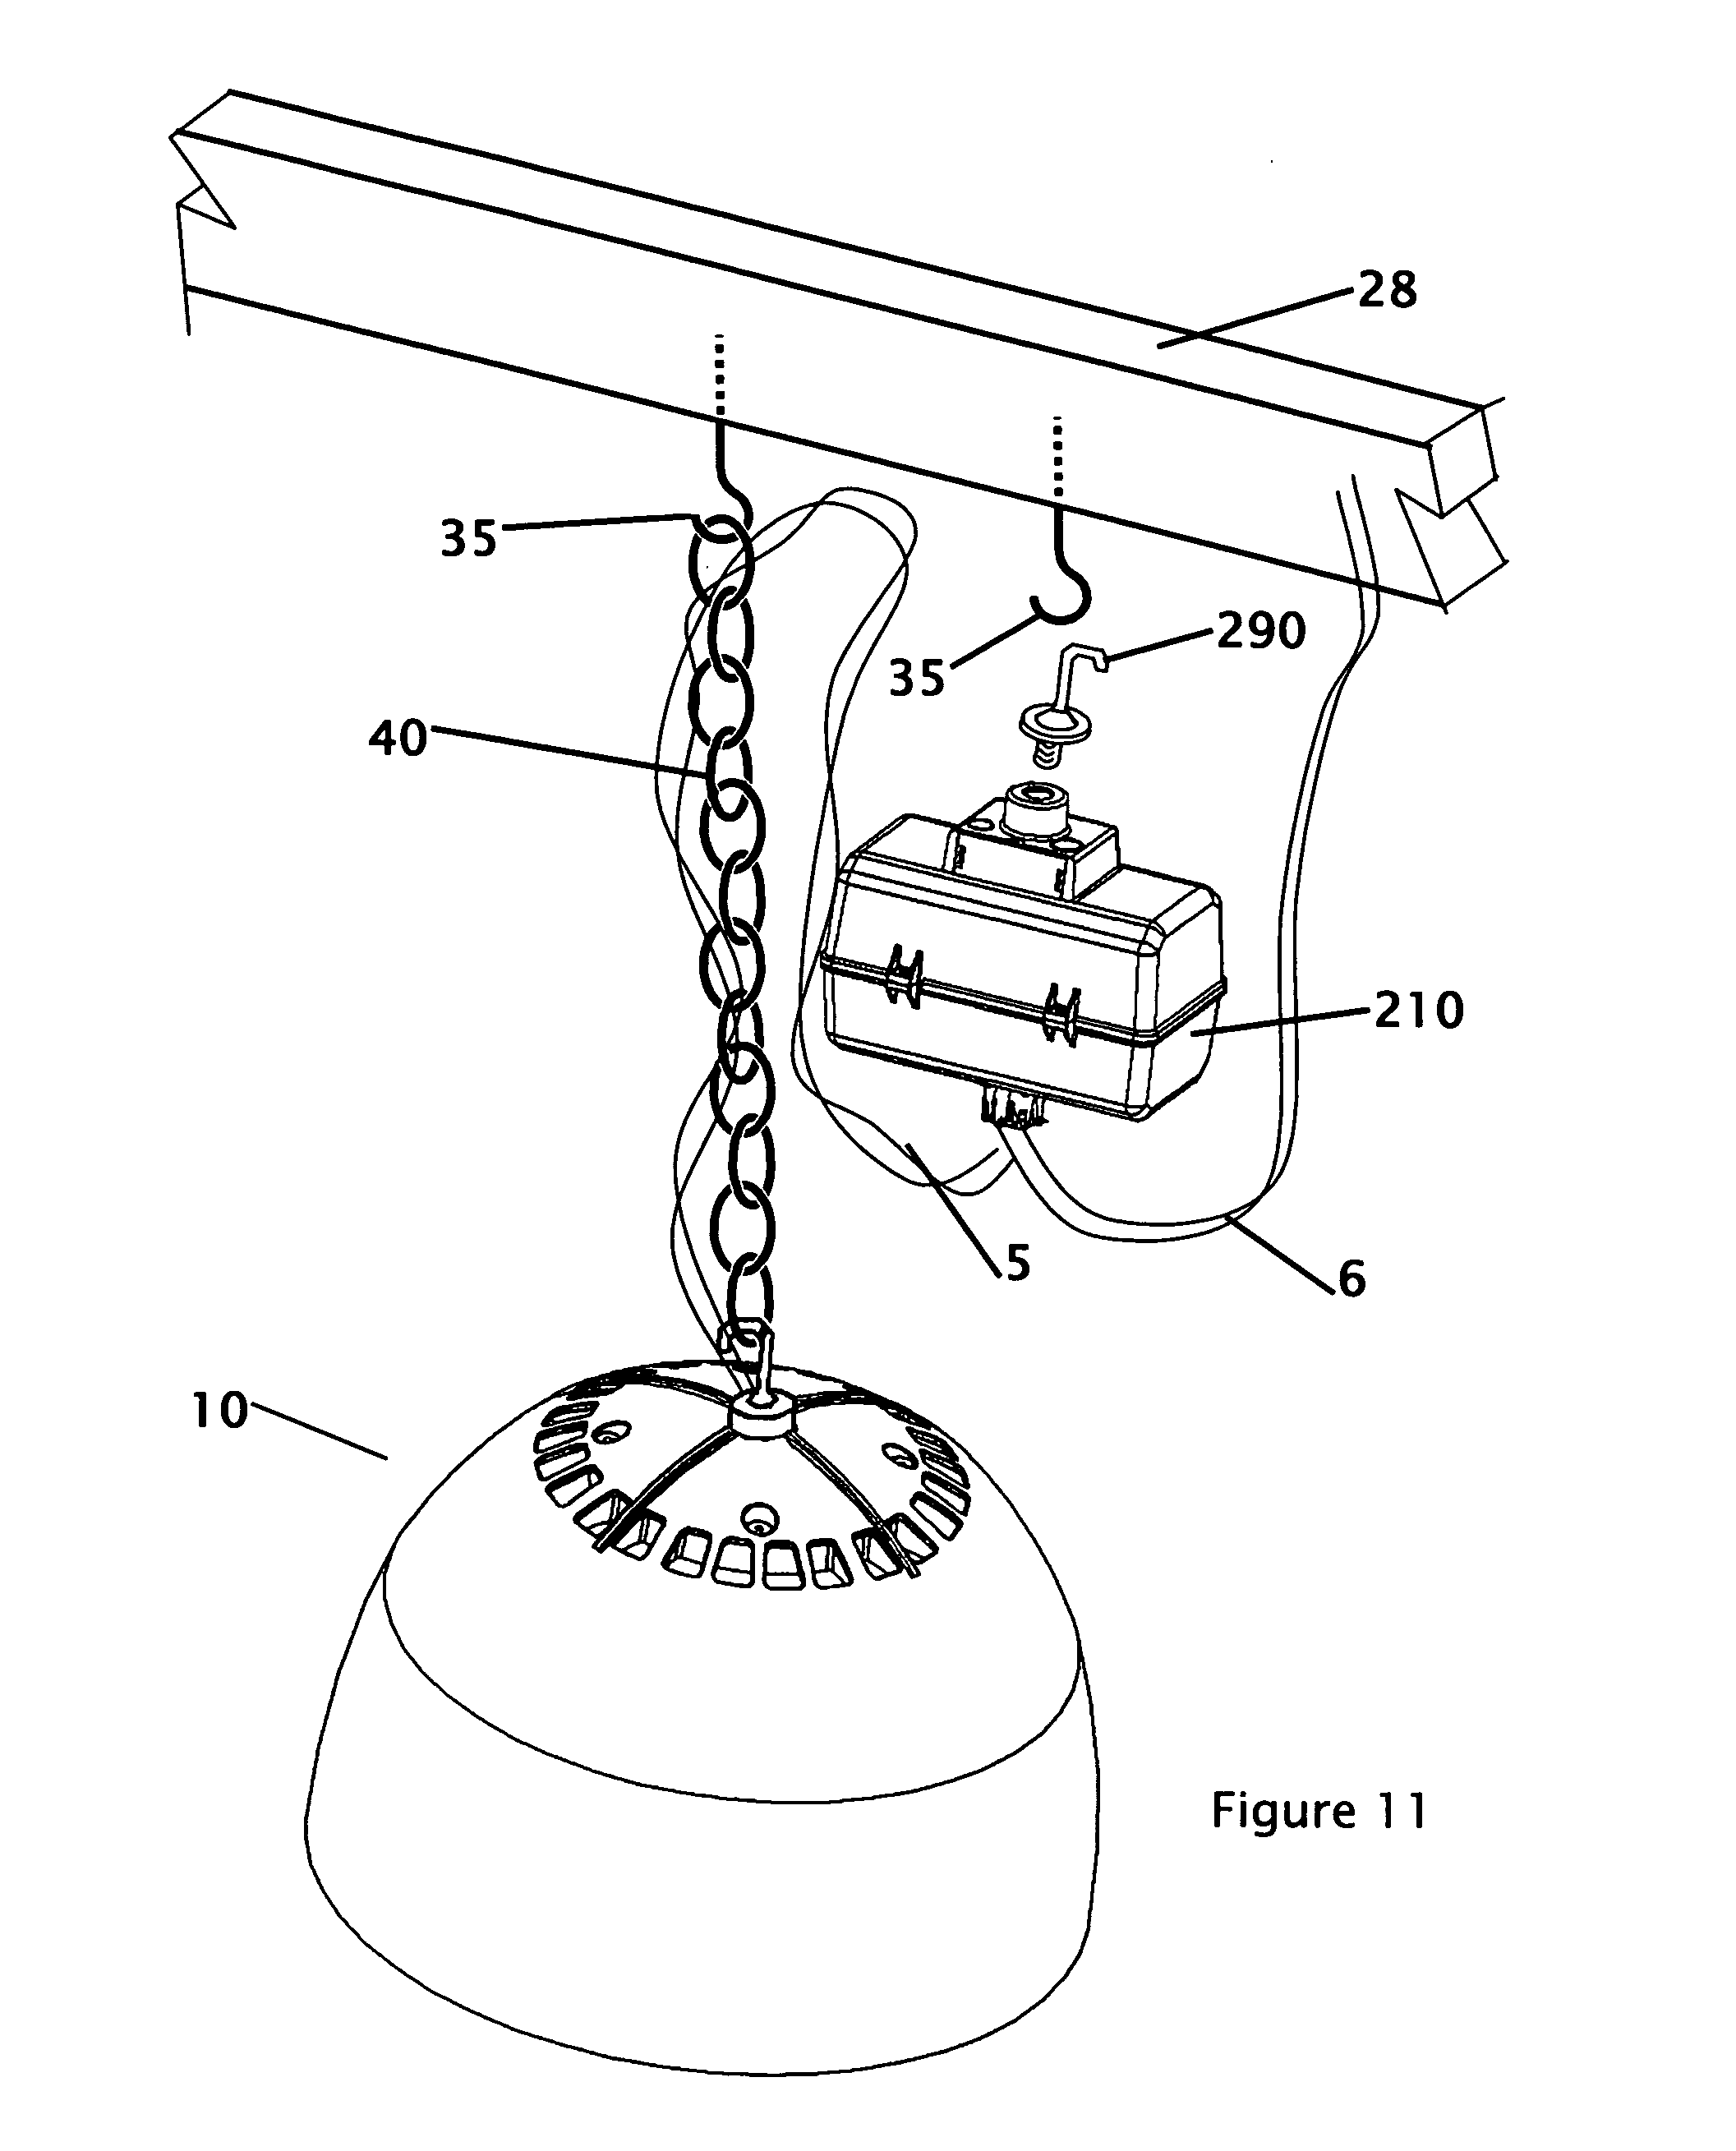 US20070115654A1 20070524 D00008 wiring light fixtures in parallel diagram wiring,Wiring Diagram Fluro Lights